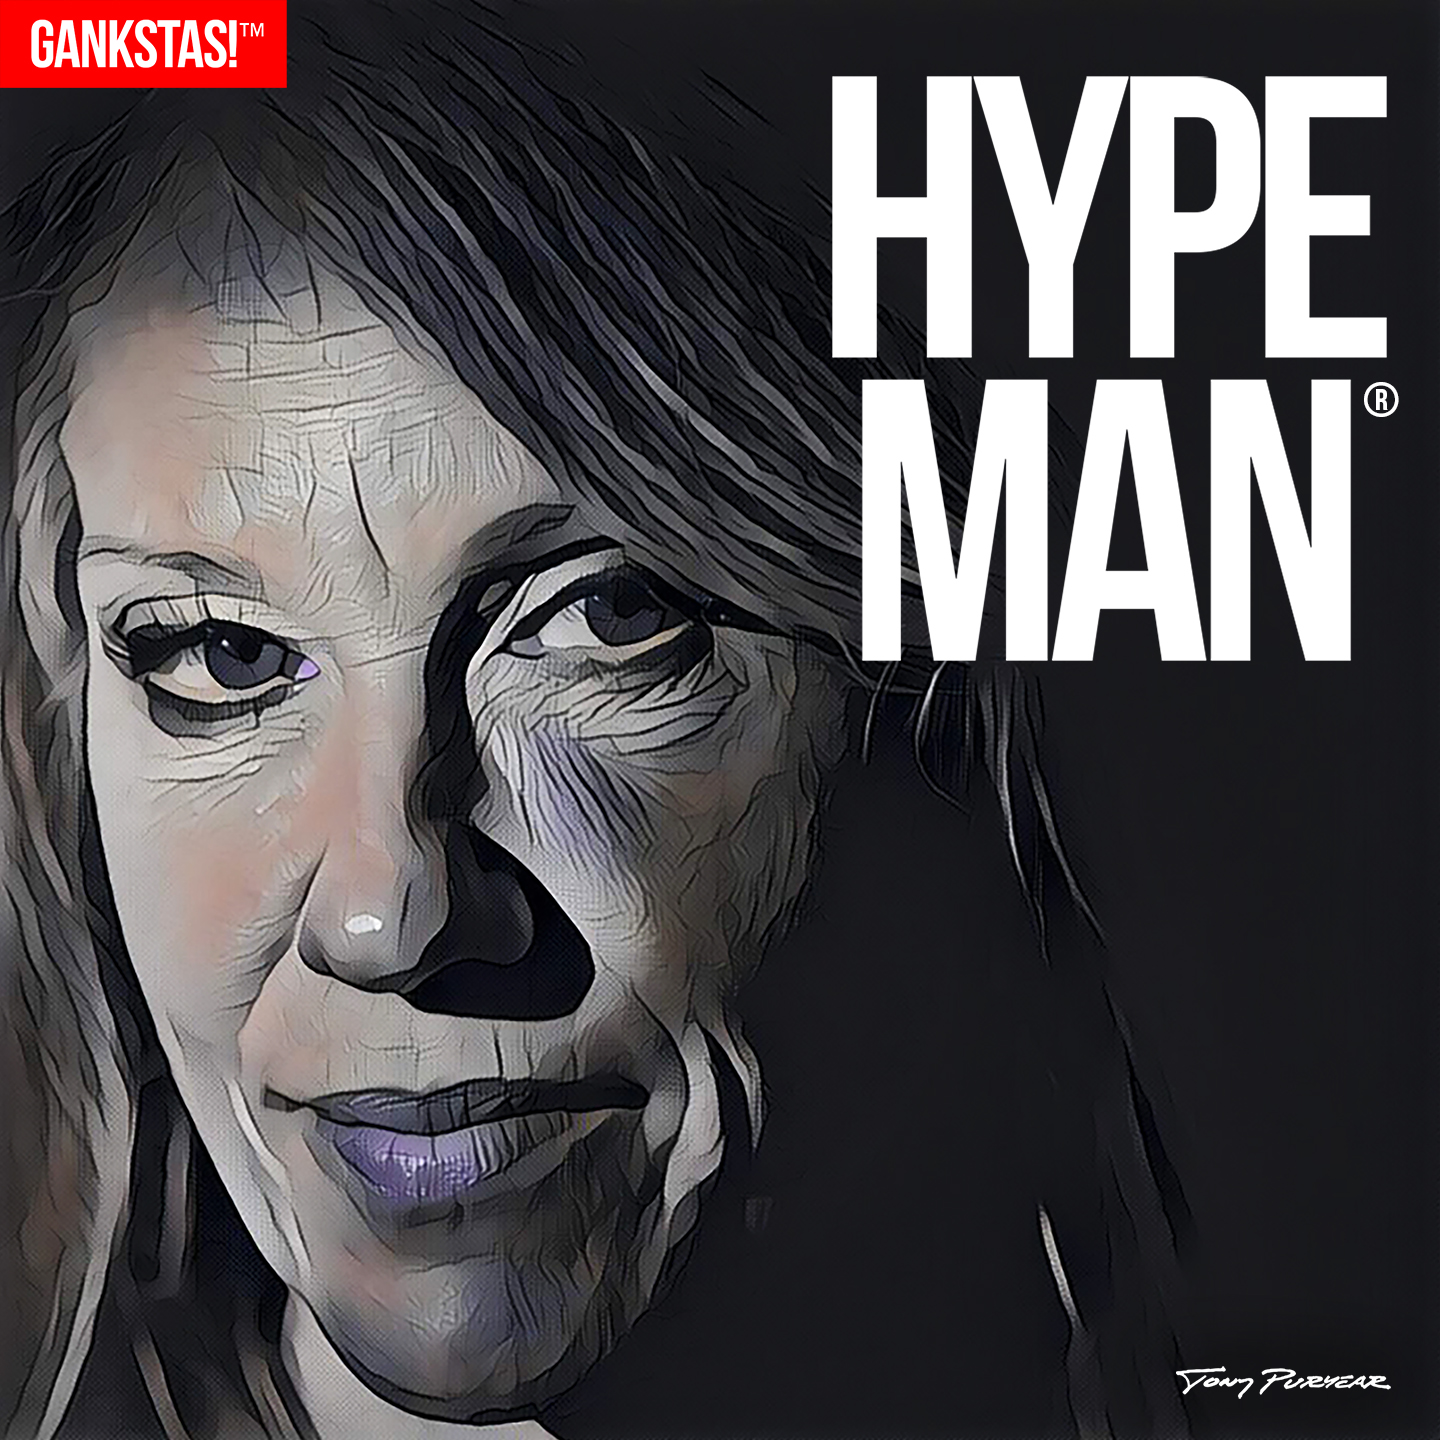 """"""" HYPE MAN """" - 2017, digital print on acid-free paper, 14.5""""x14.5"""" Every act needs a hye man, someone to whip up the crowd, and  Kellyanne Conway  is the Flavor Flav of the Trump Crime Family®."""